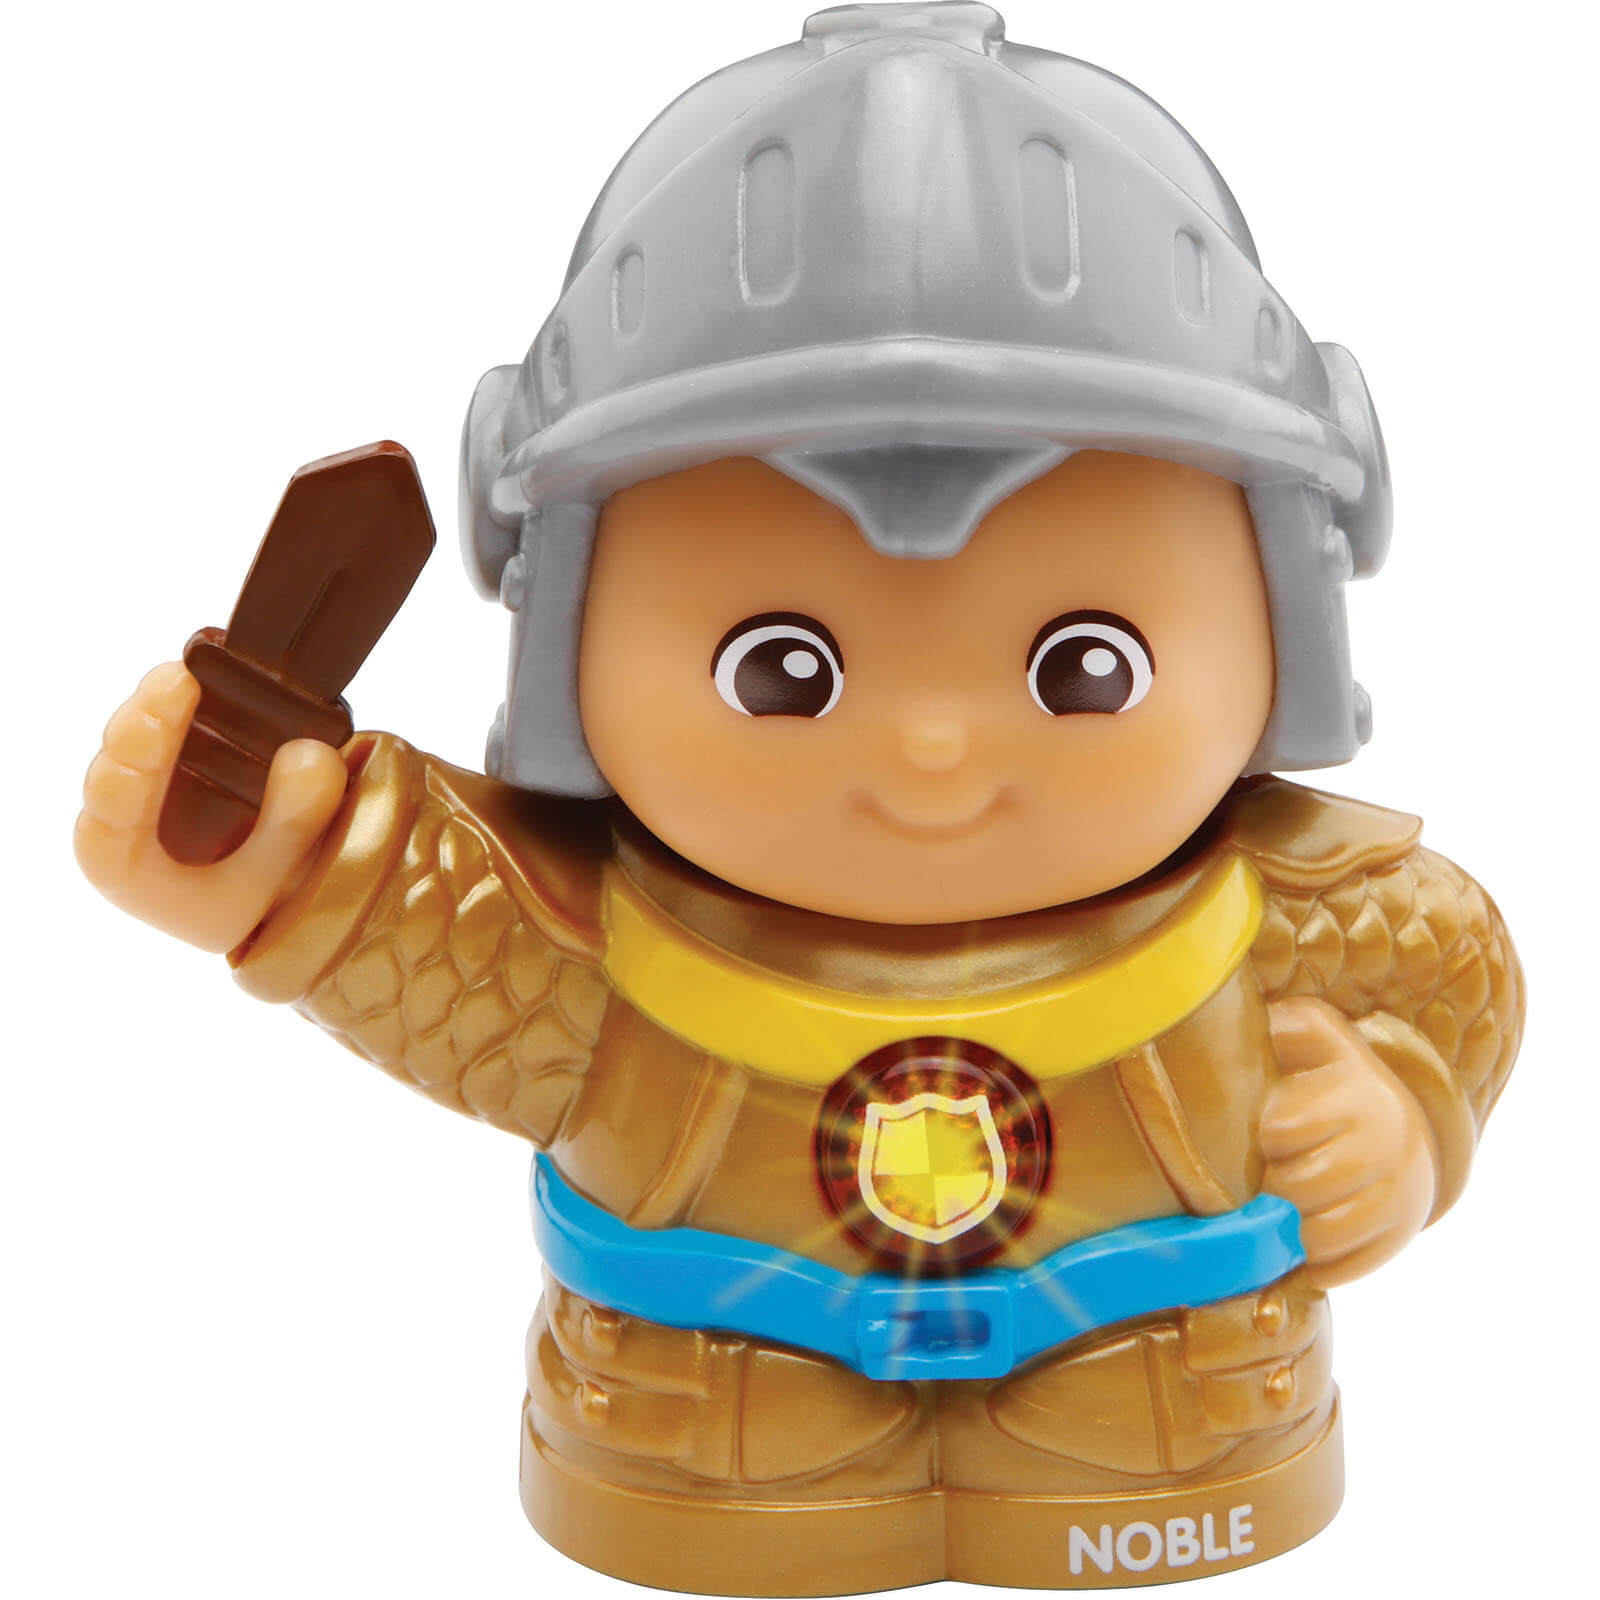 Vtech Toot-Toot Friends Kingdom Knight Noble